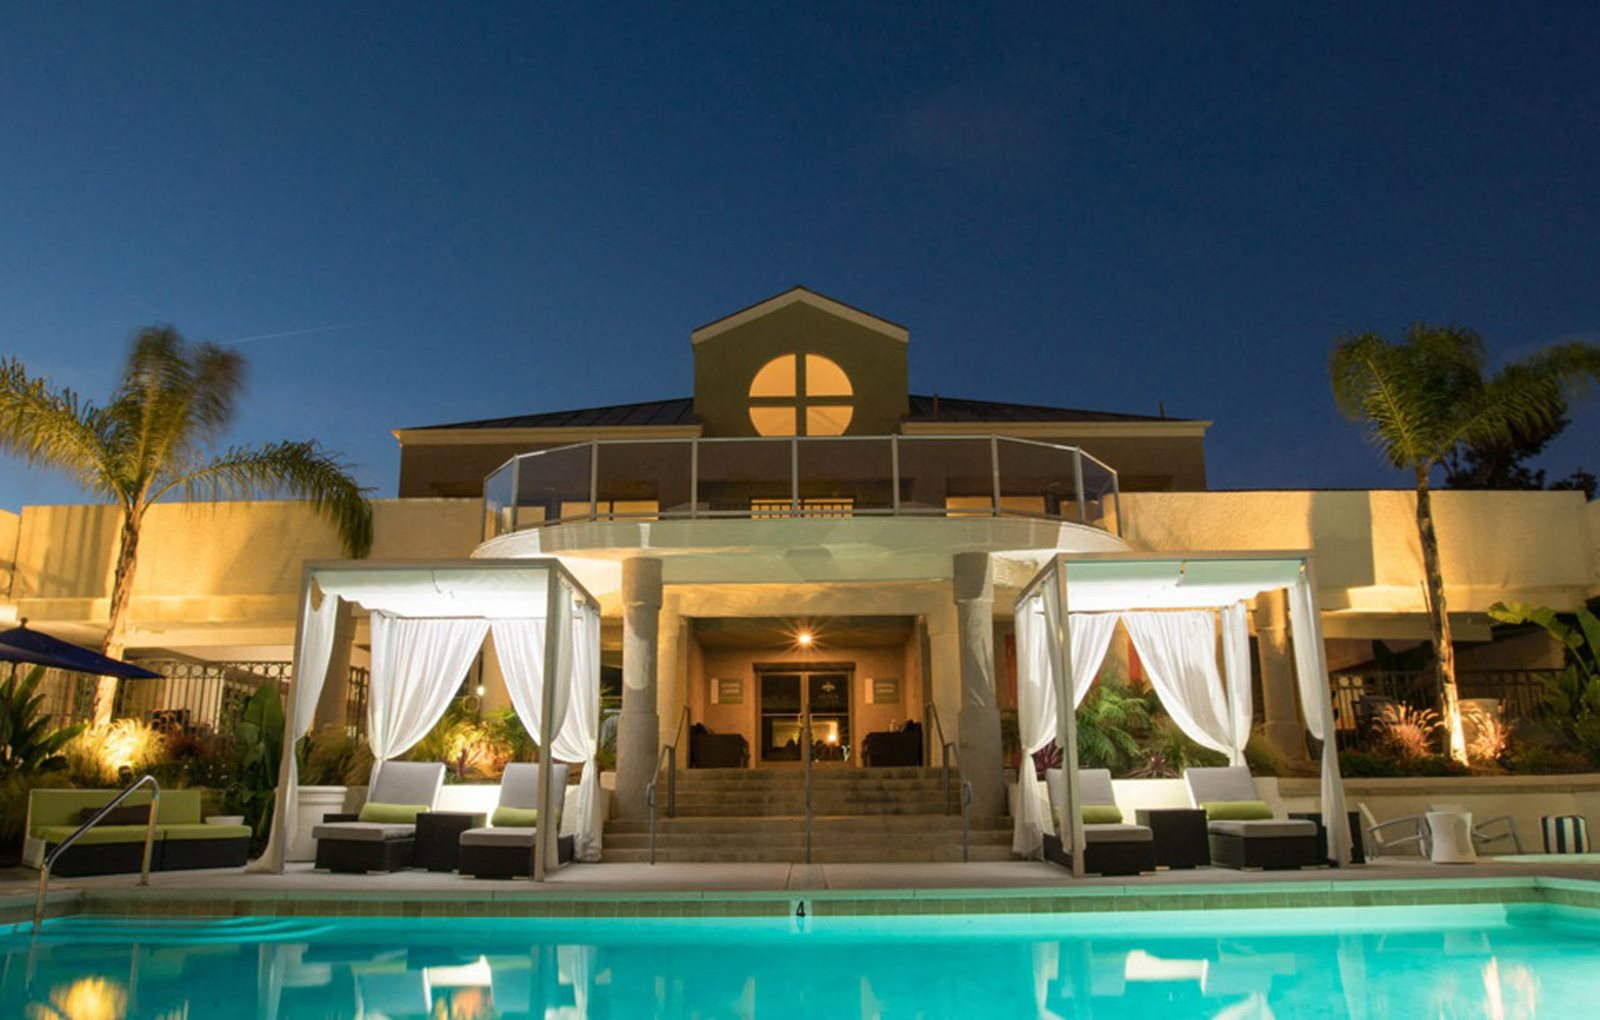 Night time pool with cabanas